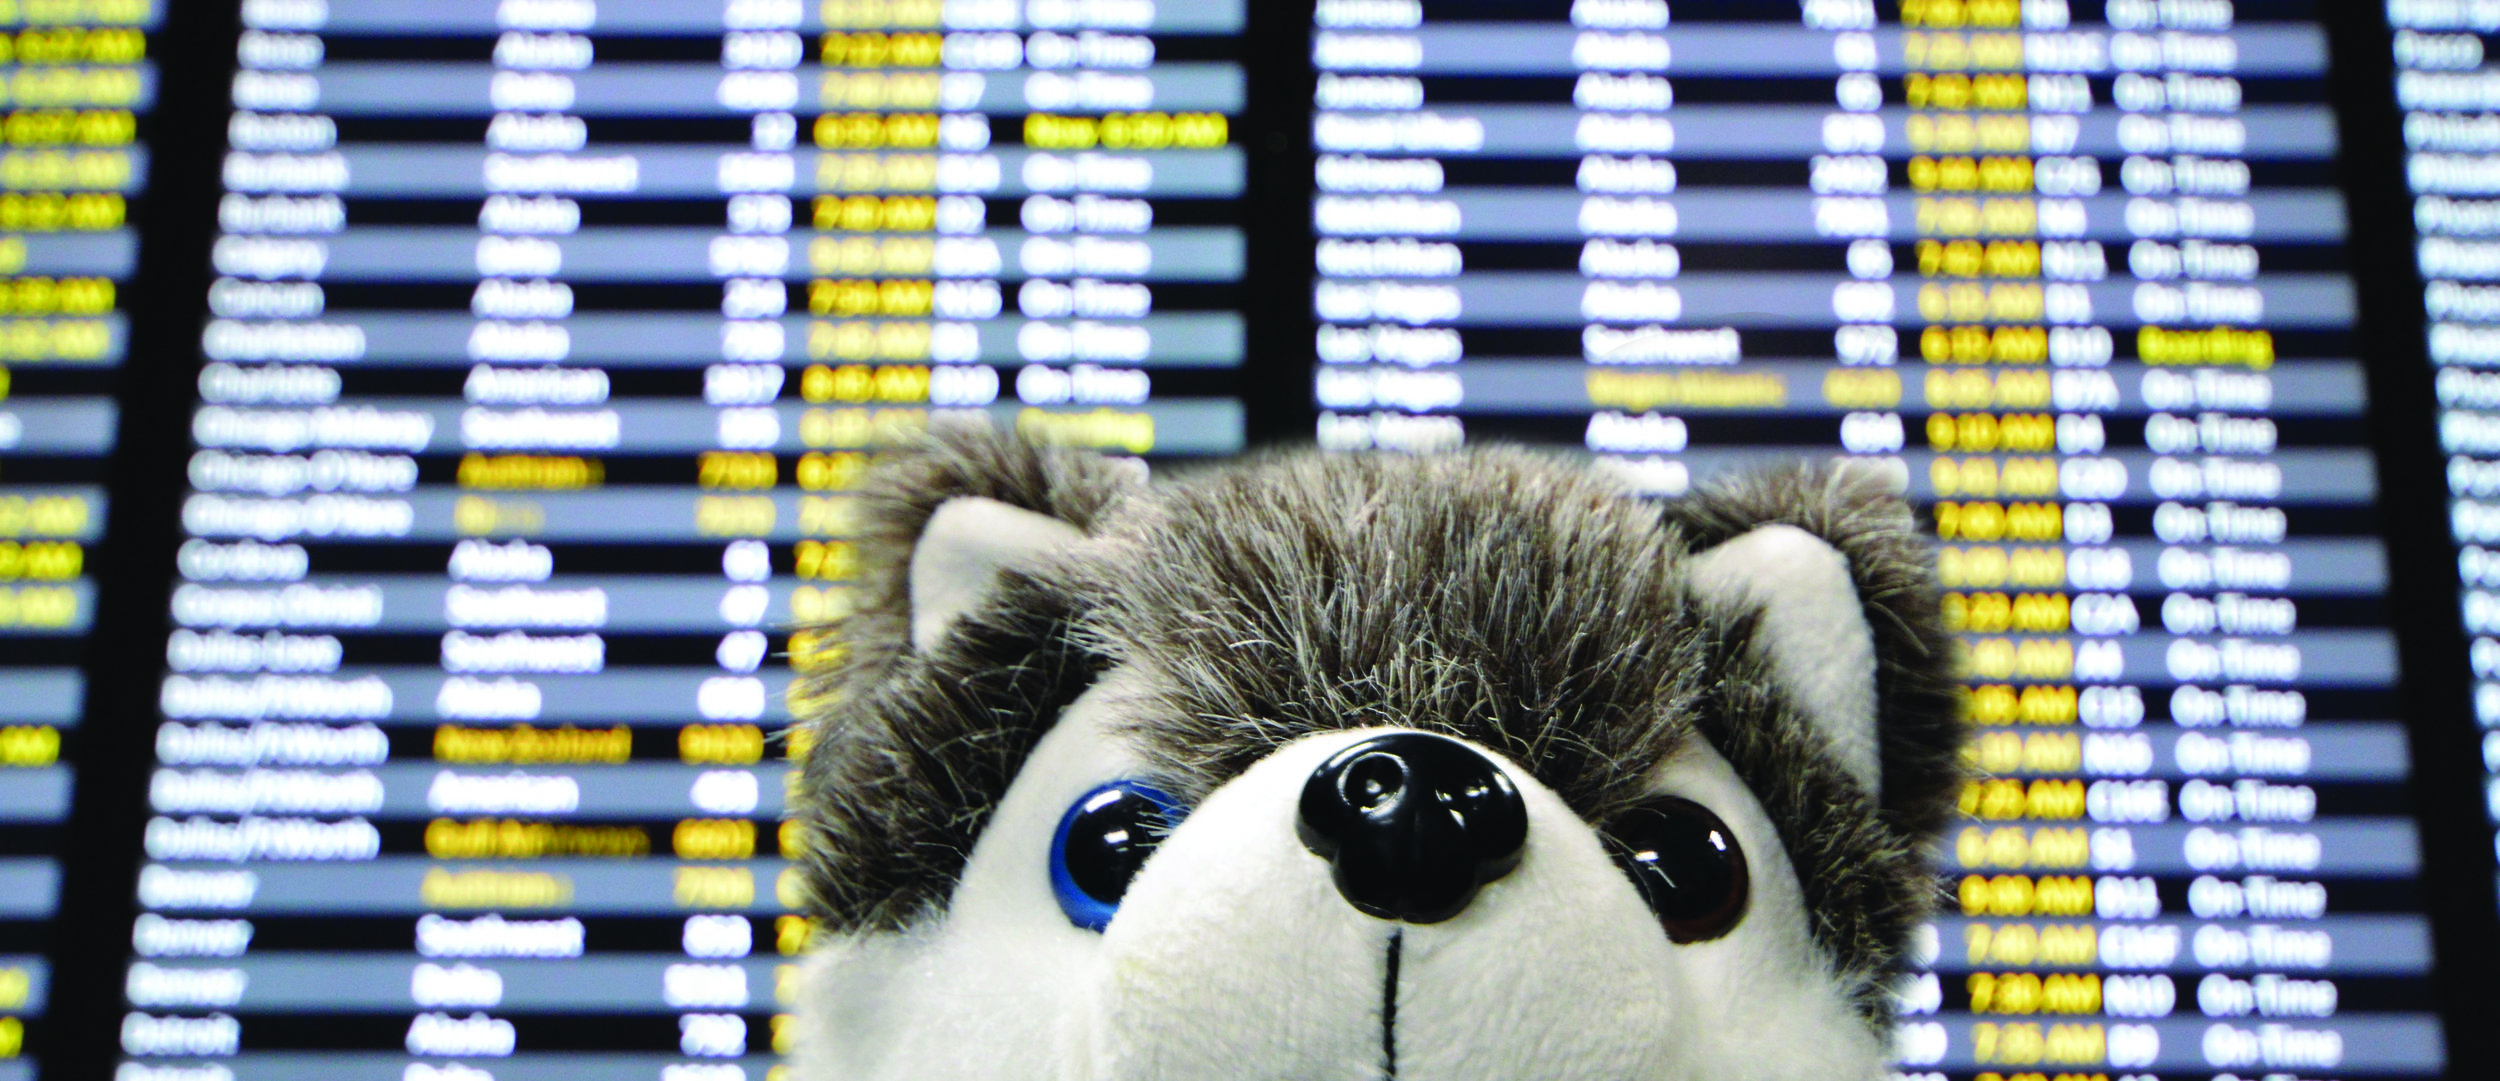 Where's Dash Going Departures 3.jpg